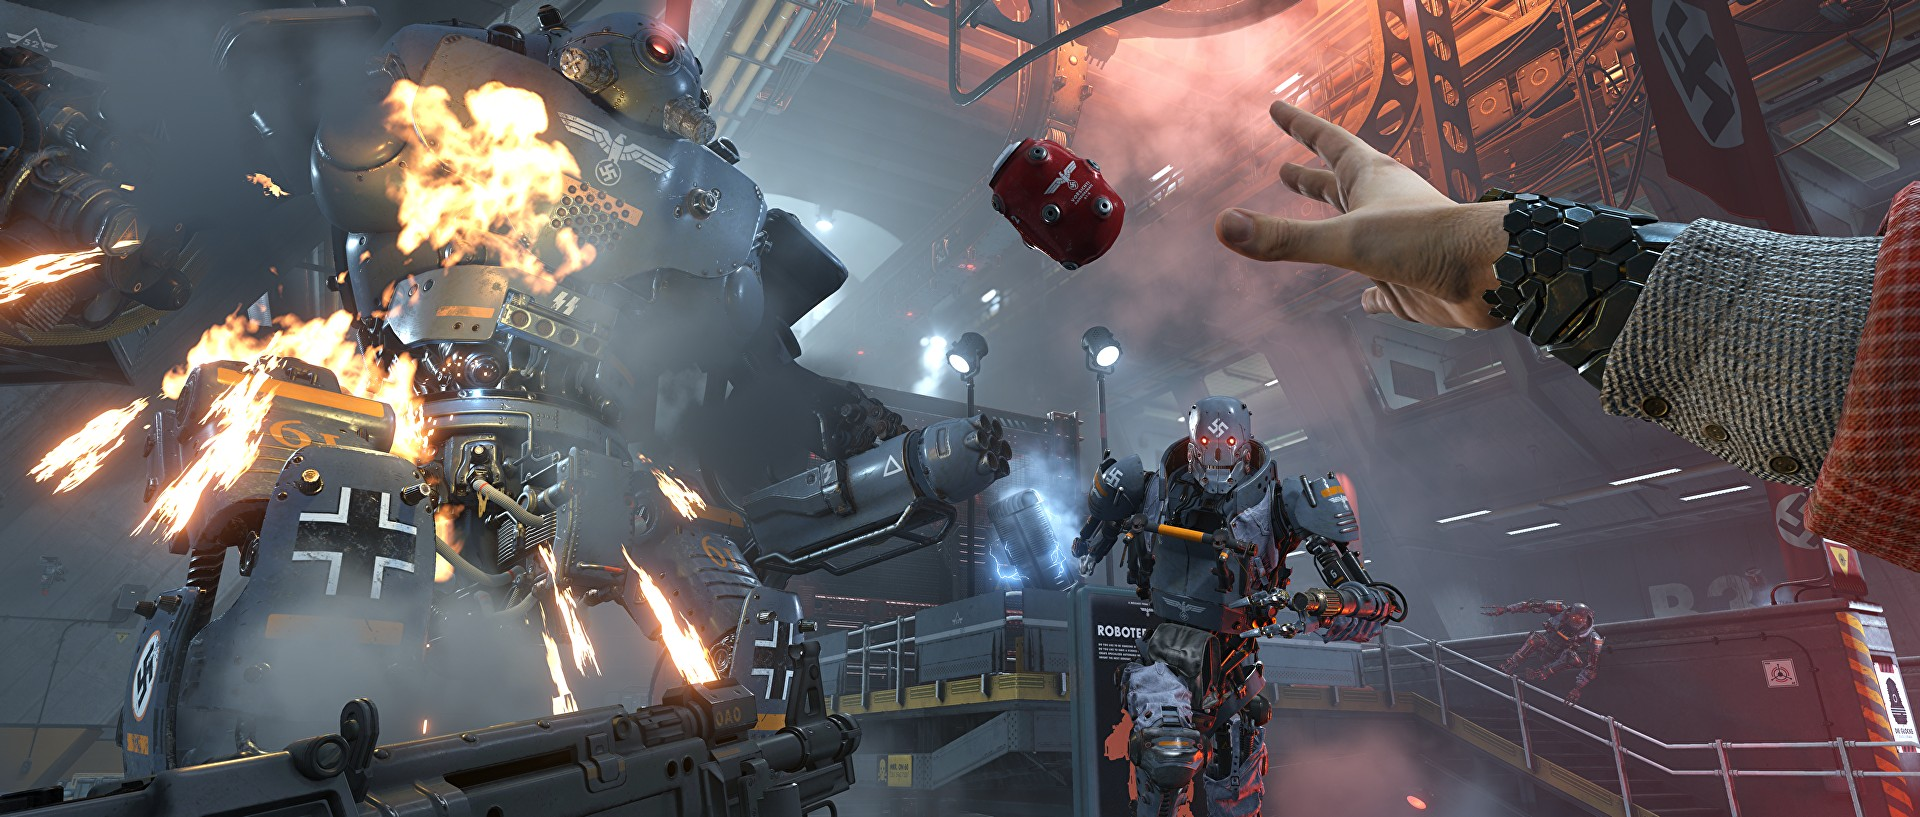 Wolfenstein 2 The New Colossus Officially Announced